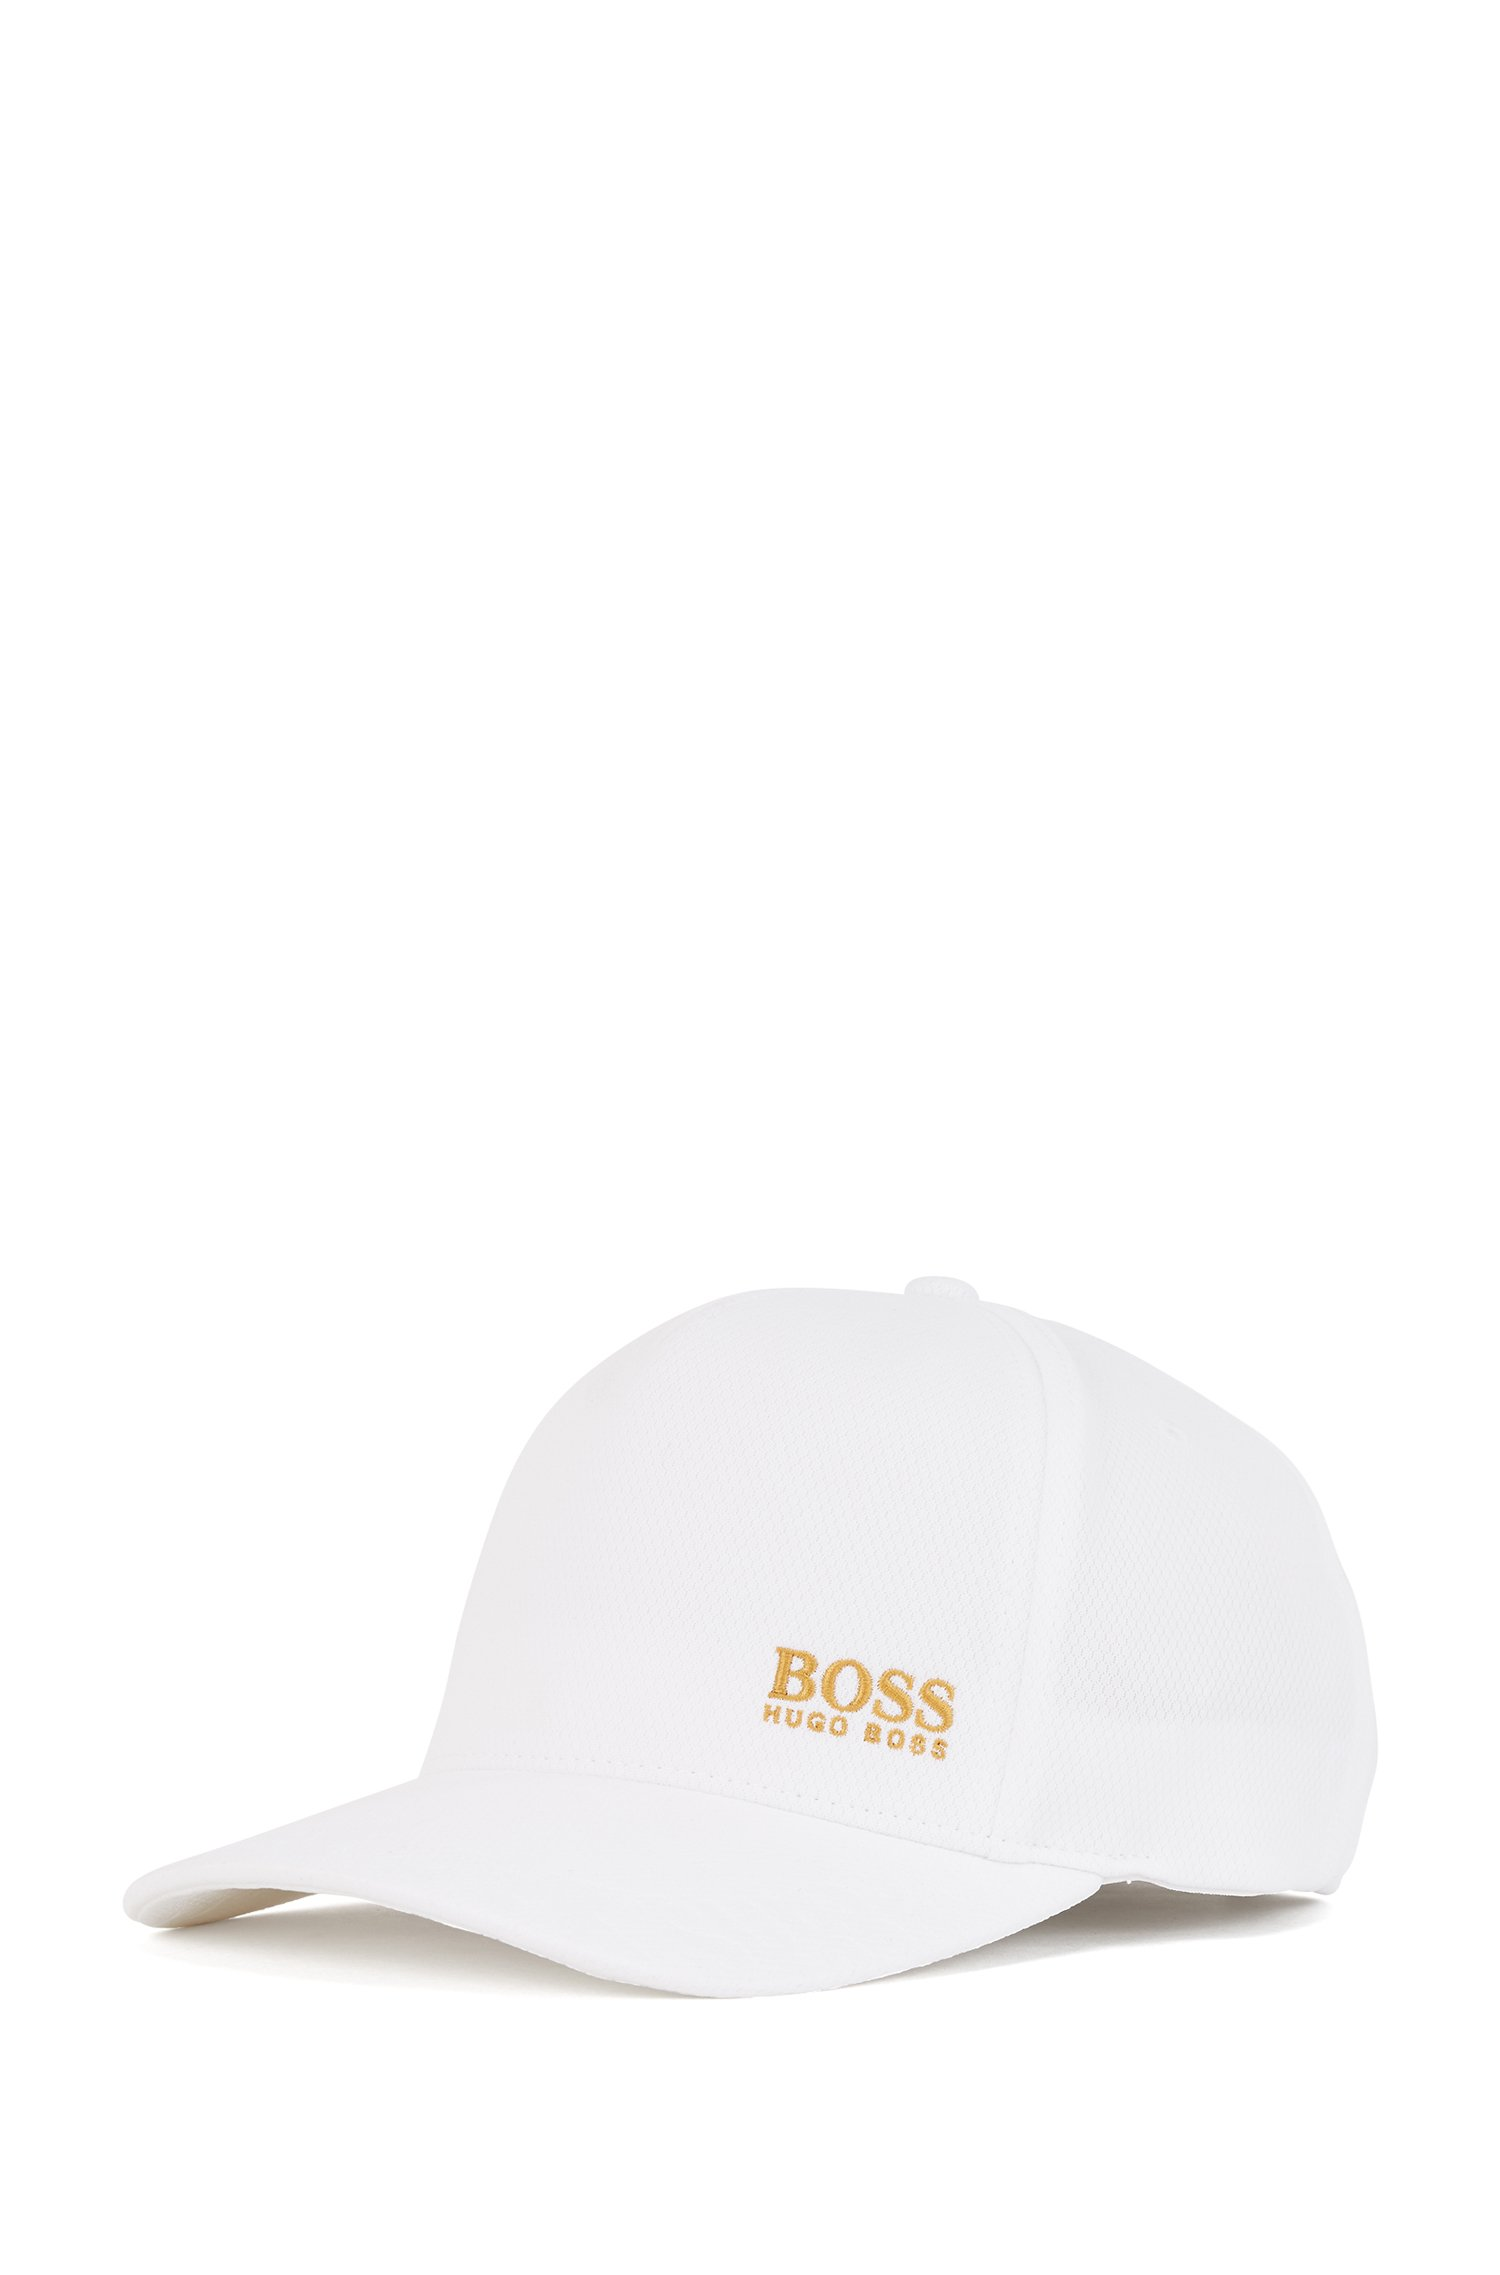 Honeycomb-jersey cap with gold-tone logo, White